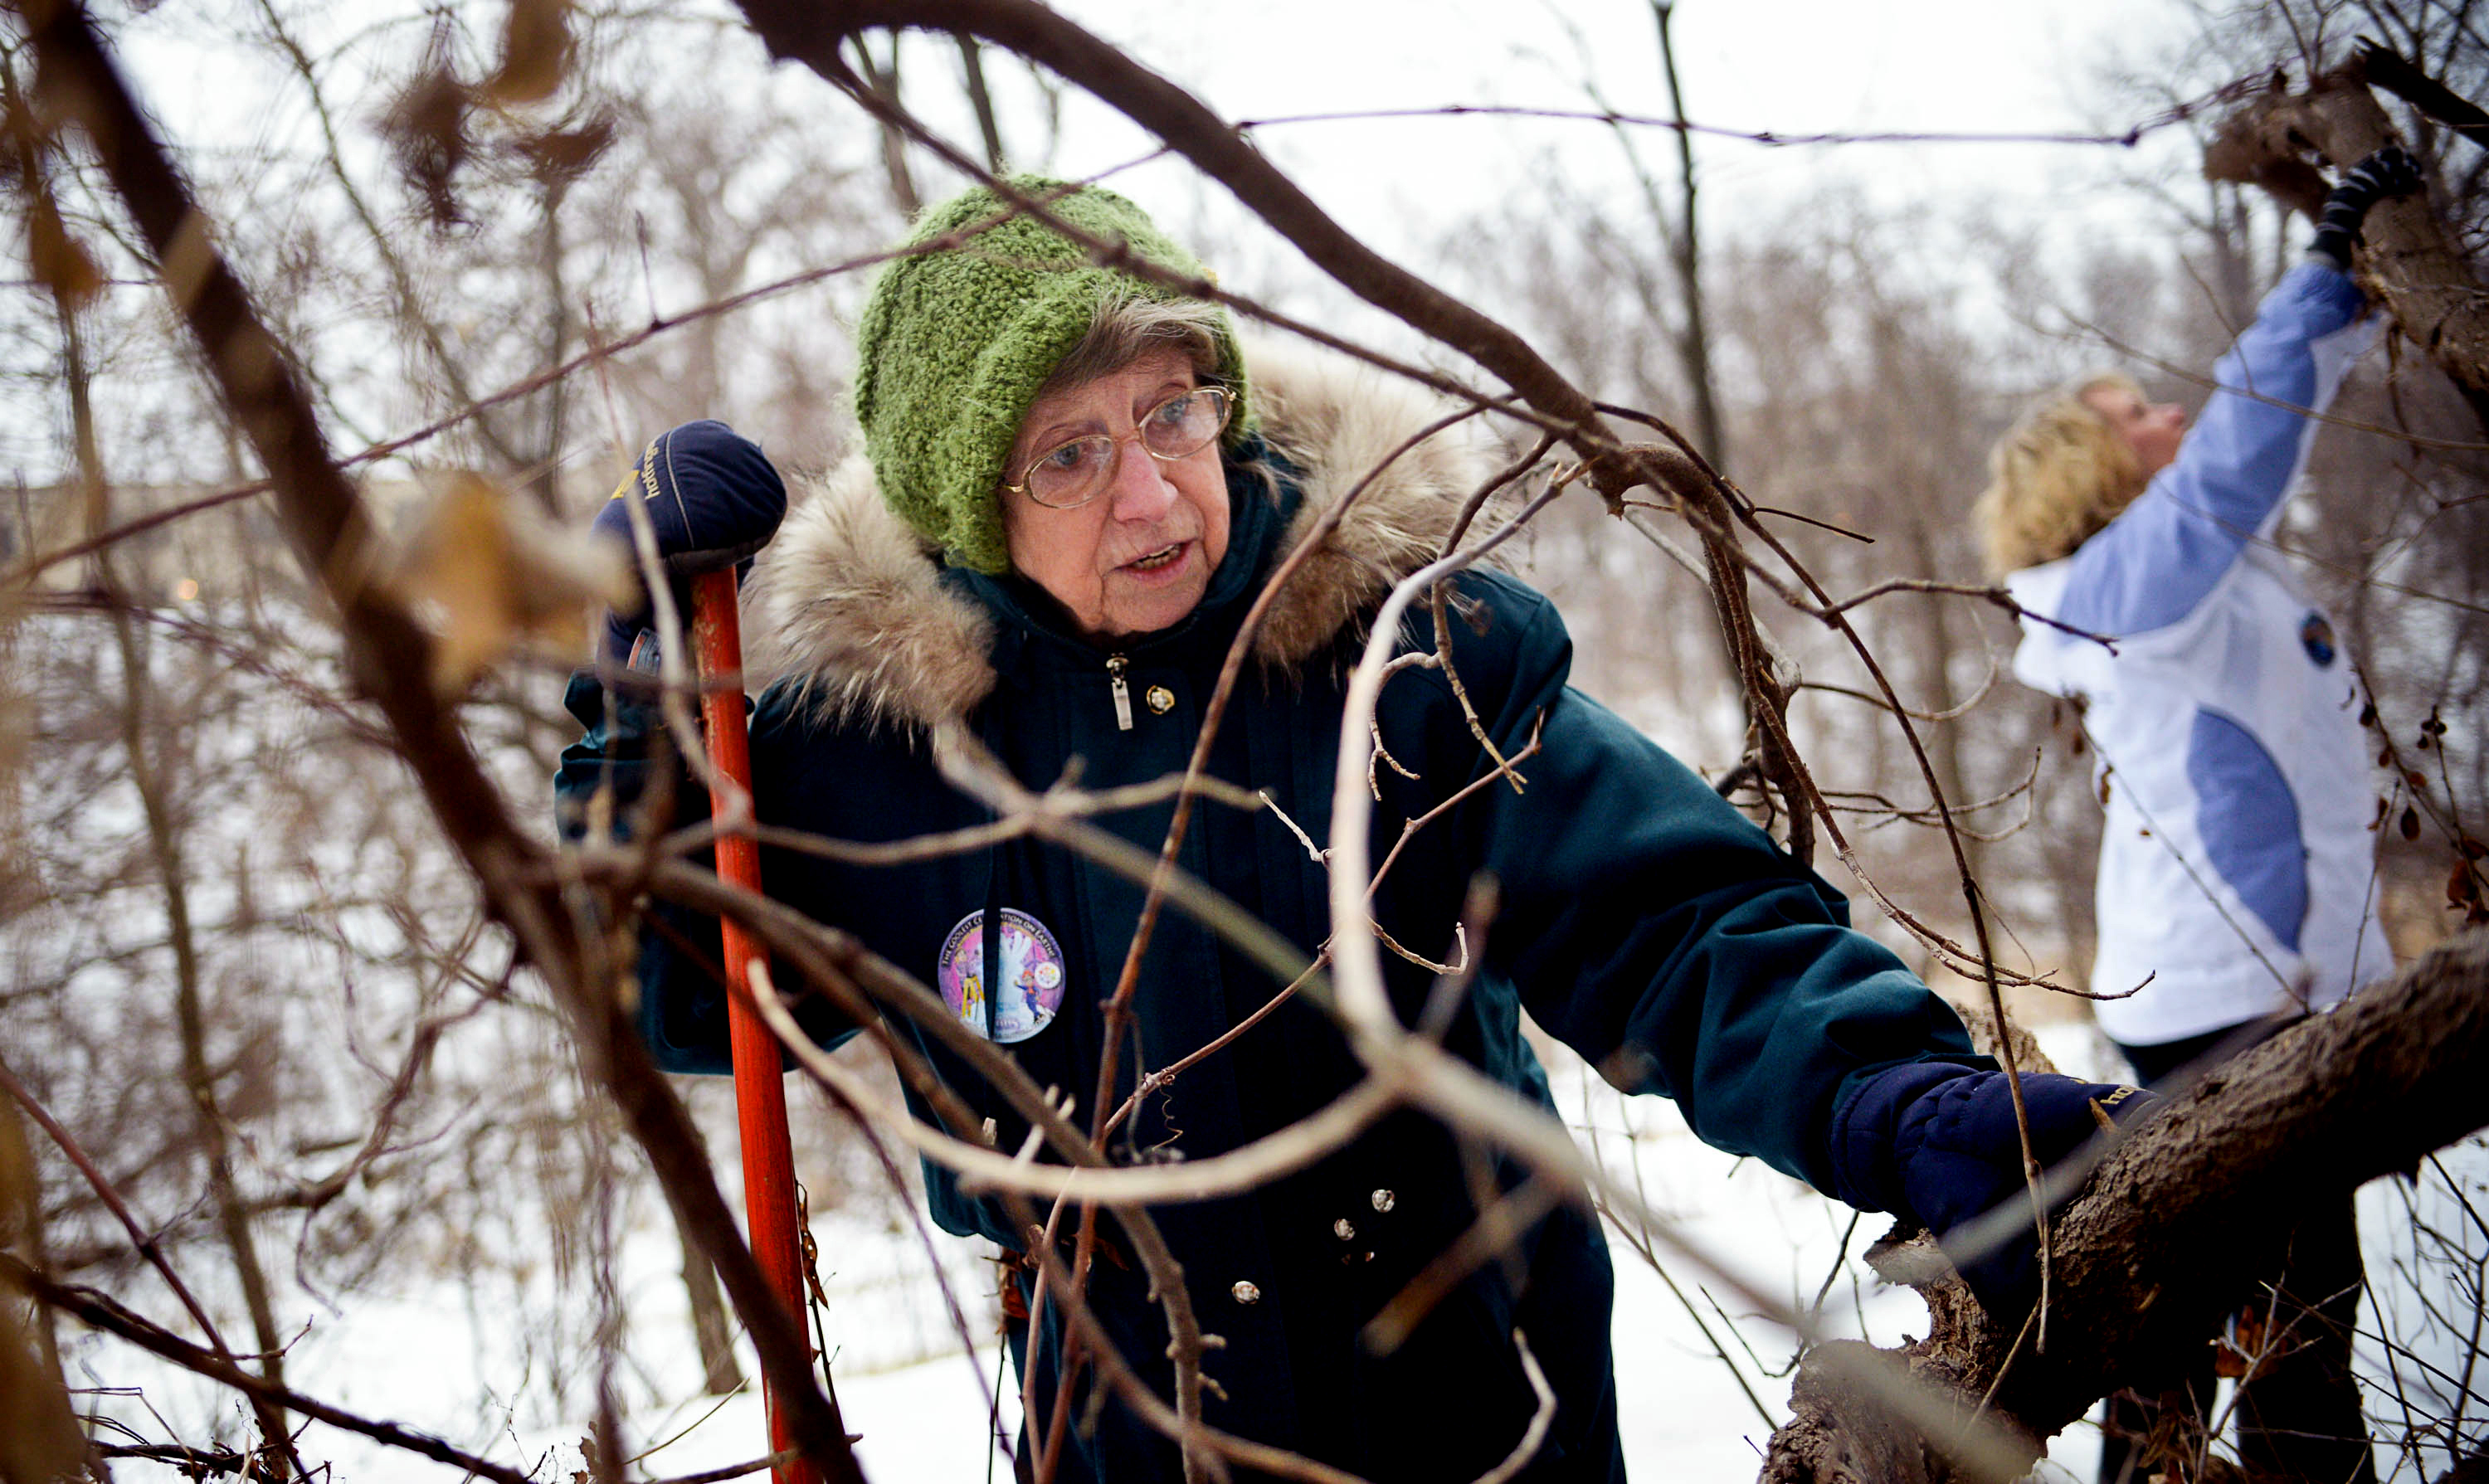 """Jay Kuehn, 82, of Oakdale searches for the medallion in the """"Fury presents the Pioneer Press Treasure Hunt"""" at Swede Hollow Park in St. Paul on Tuesday, Jan. 20, 2015. // Photo by Ben Garvin / Pioneer Press"""